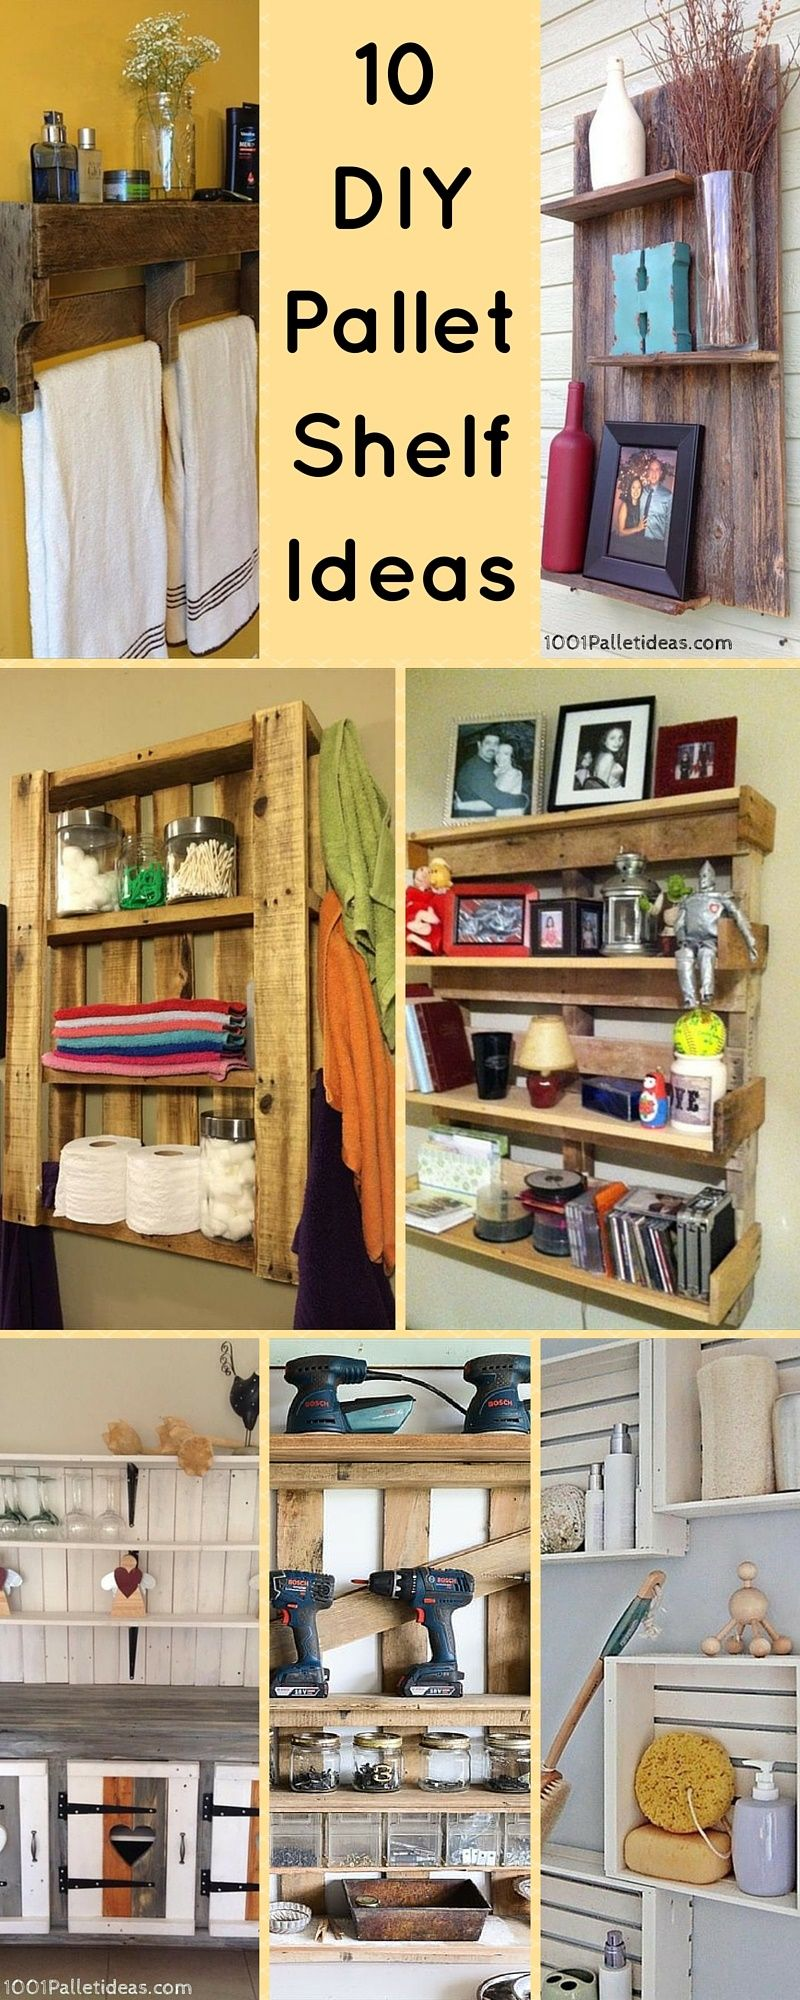 10 diy wood pallet shelf ideas wood pallet shelves. Black Bedroom Furniture Sets. Home Design Ideas